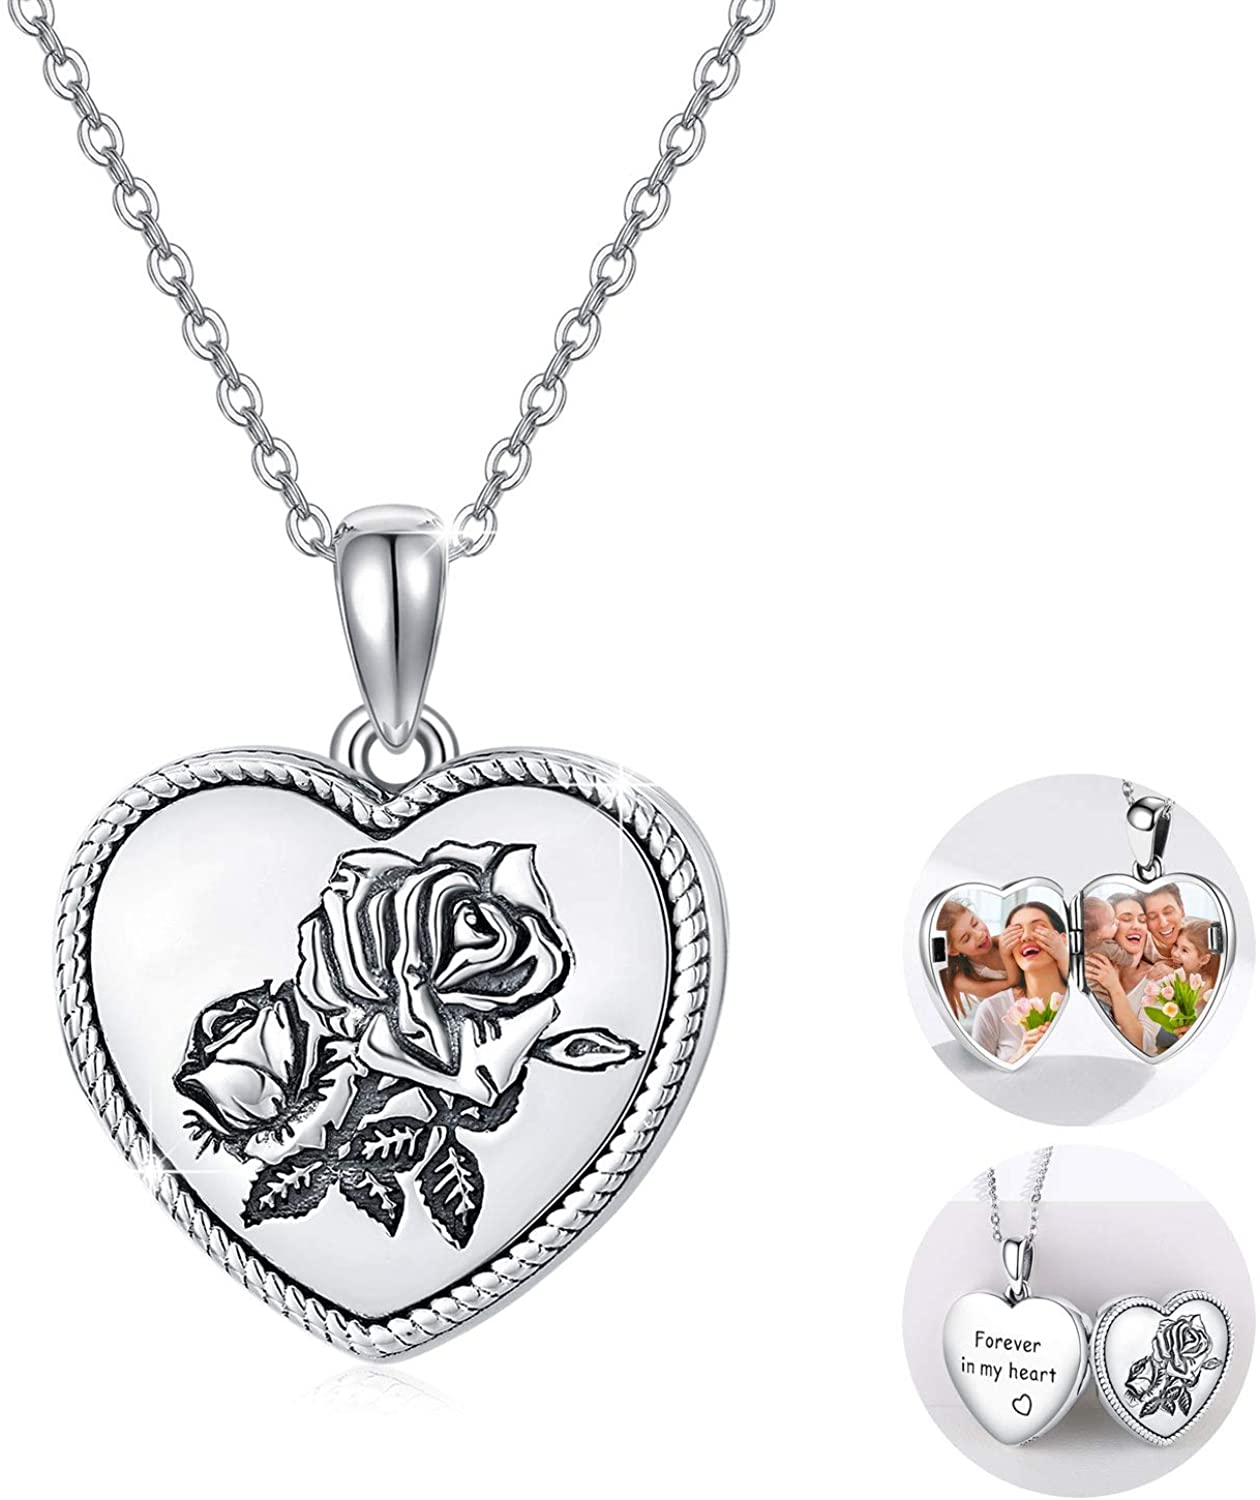 """Rose Flower Heart Shaped Locket Necklace Sterling Silver That Holds Picture Photo Necklace """"Forever in My Heart"""" Dainty Vintage Jewelry Birthday Personalized Custom Gifts for Women Mother Girlfriend"""